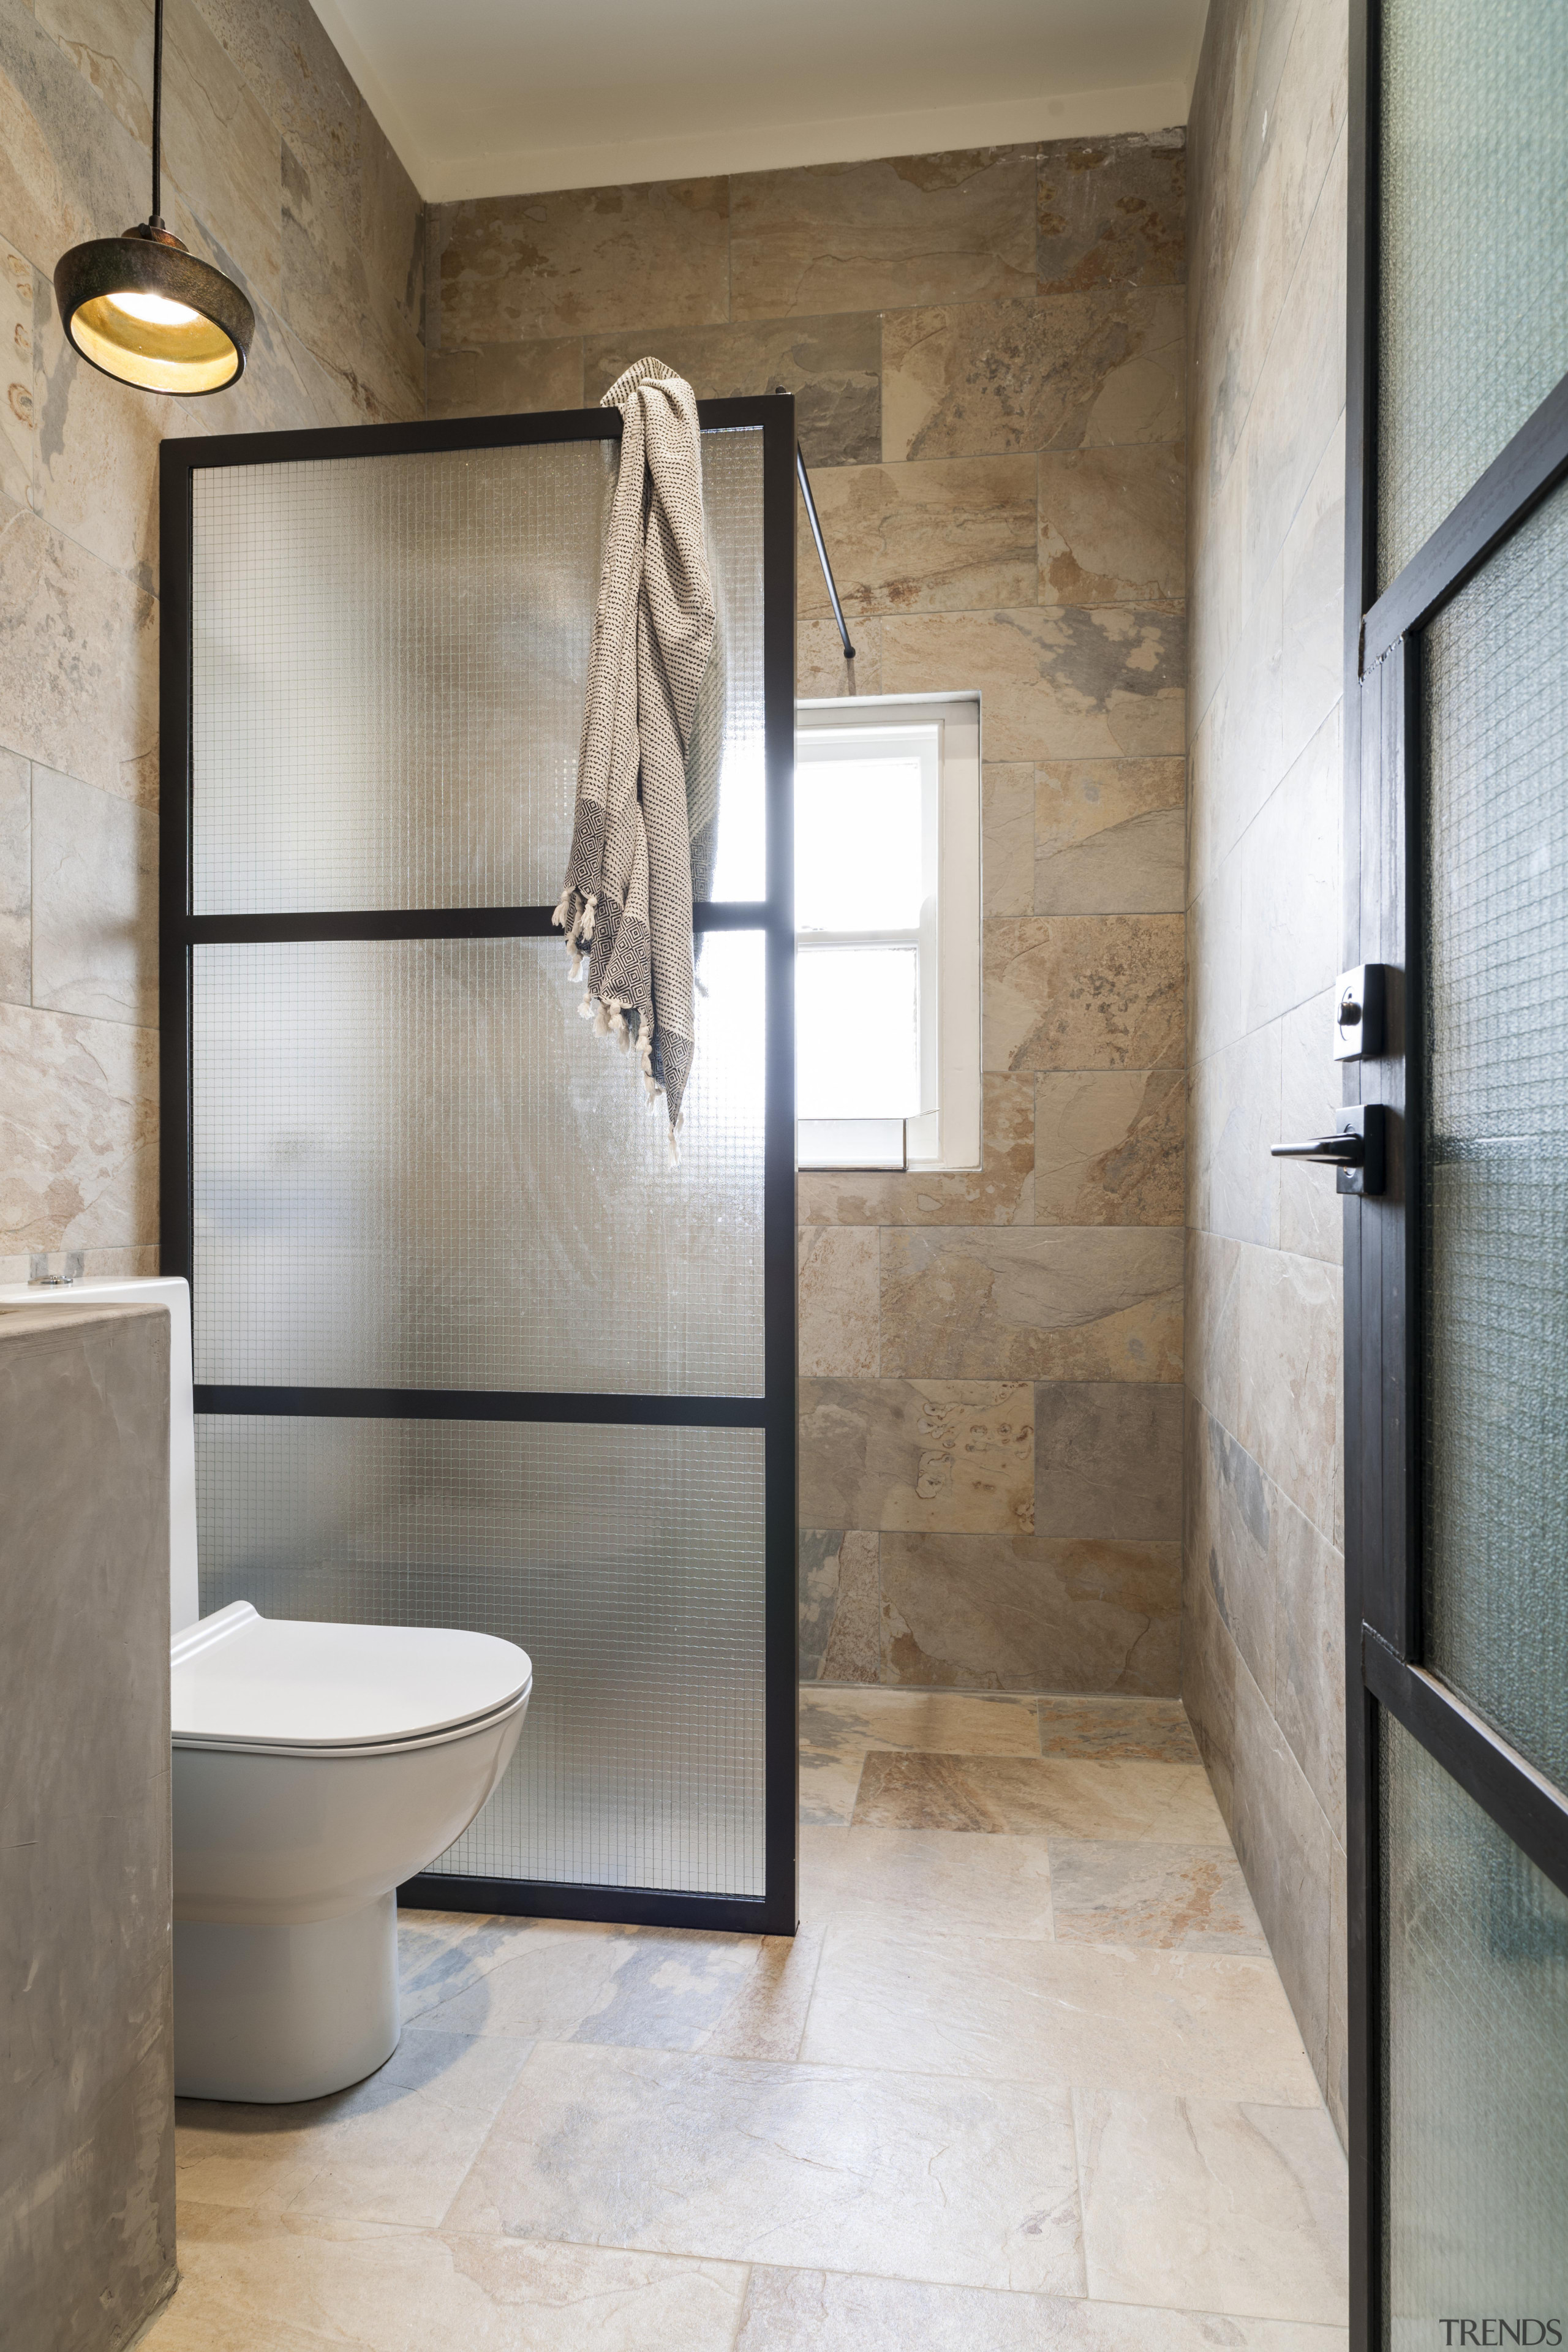 The powder room in this remodelled house features architecture, bathroom, floor, home, interior design, plumbing fixture, room, tile, gray